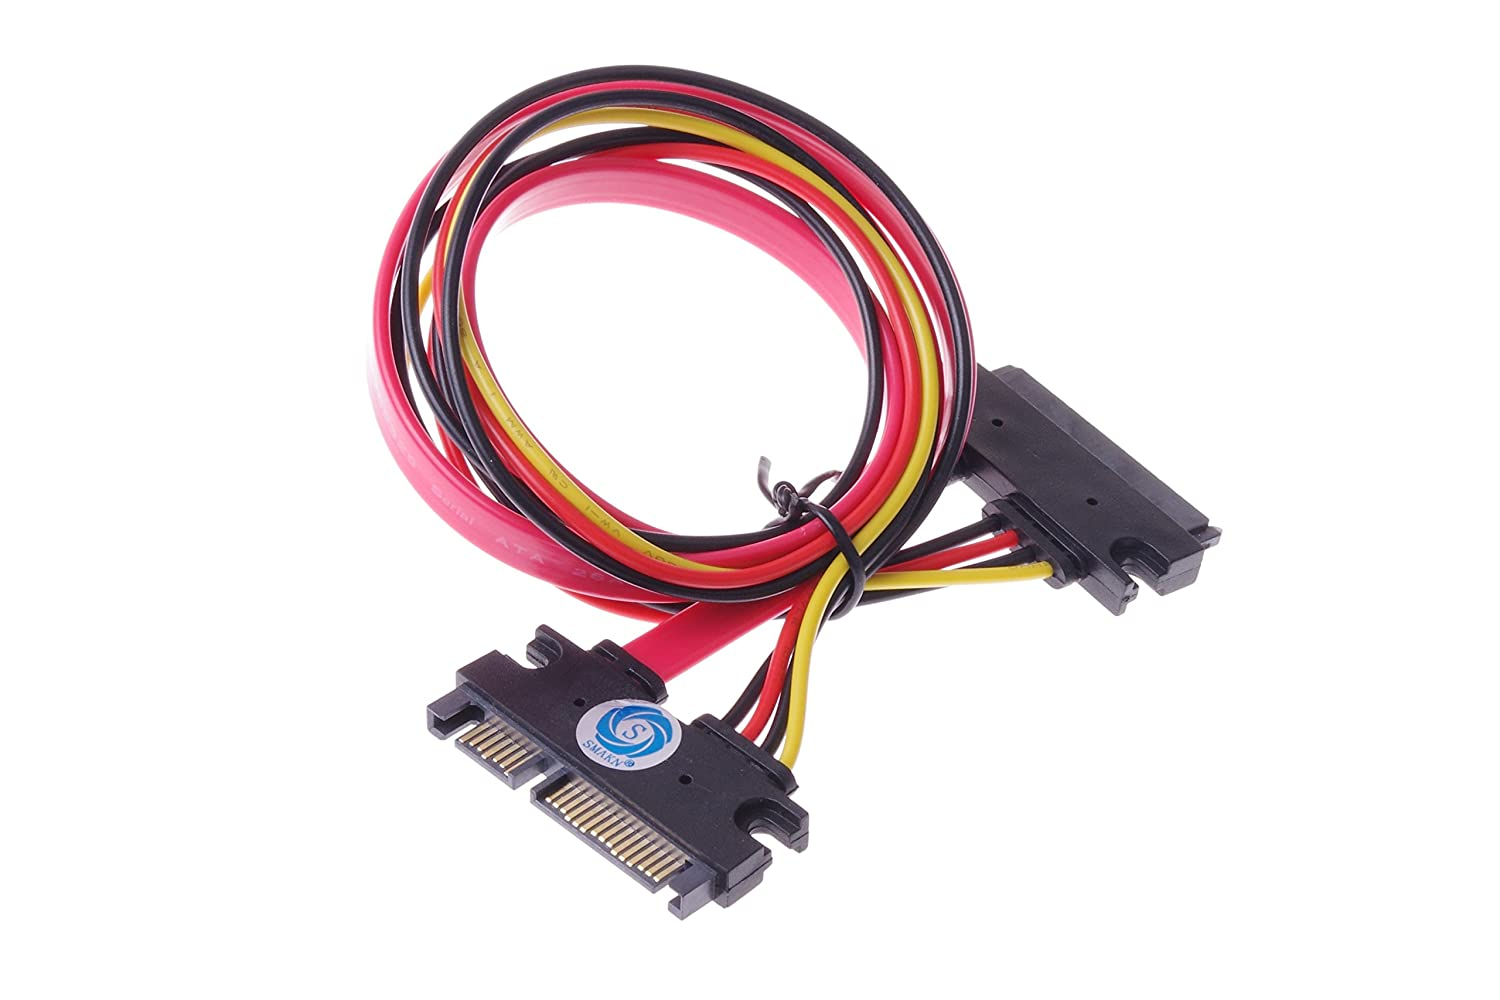 Smakntm 22 Pin 7 15 Sata Male To Female Data And Serial Cable Schematic Power Combo Extension Slimline M F 20inch 50cm Computers